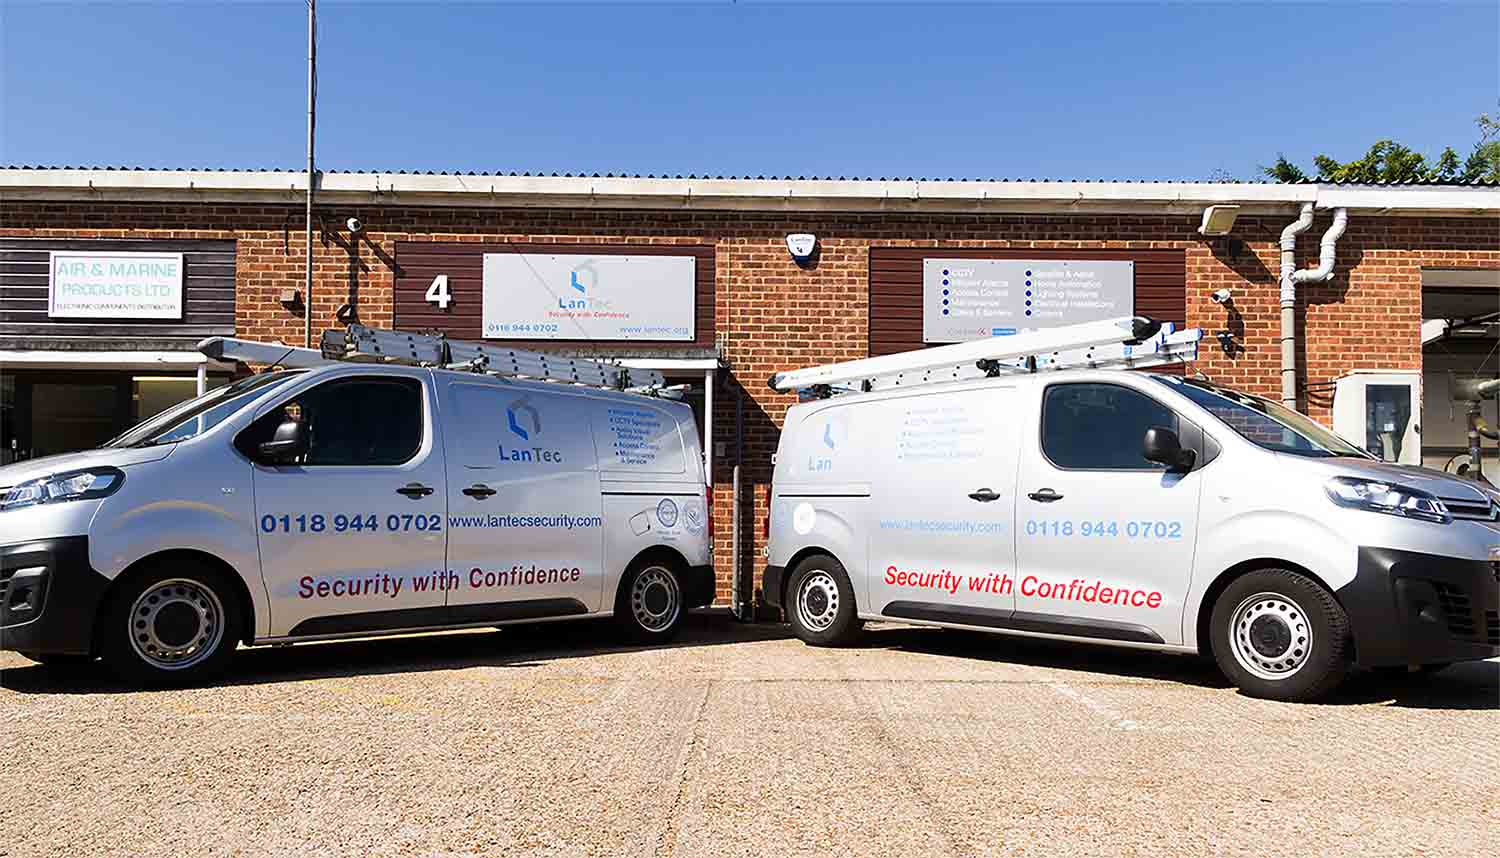 Lantec Security - CCTV, Intruder Alarm, Audio Visual Specialists Berkshire